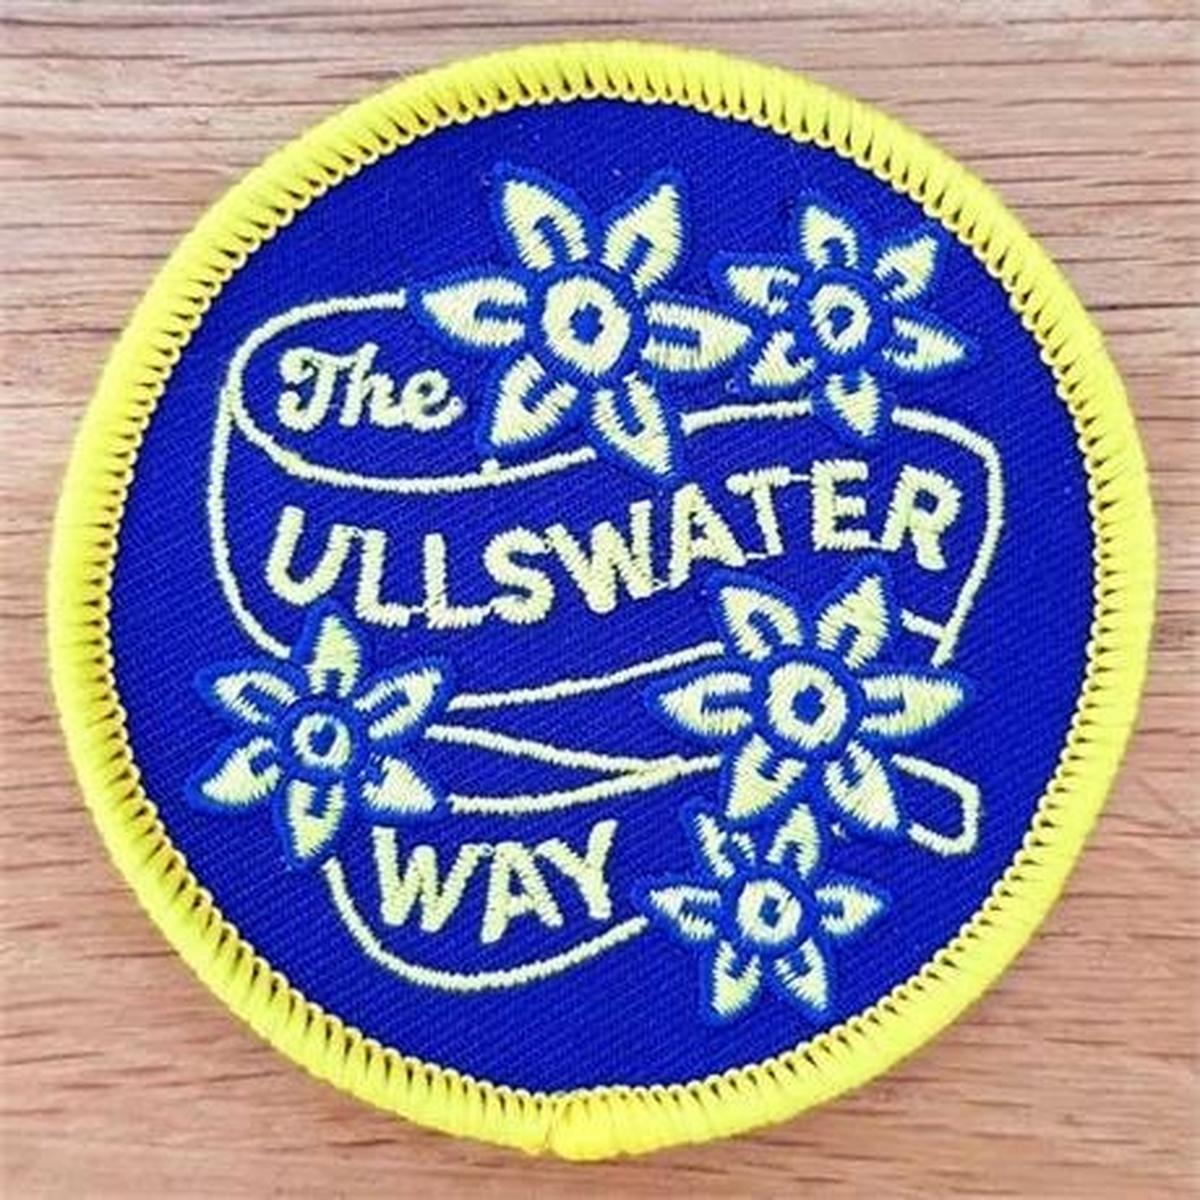 Conquer Lake District Patch - The Ullswater Way